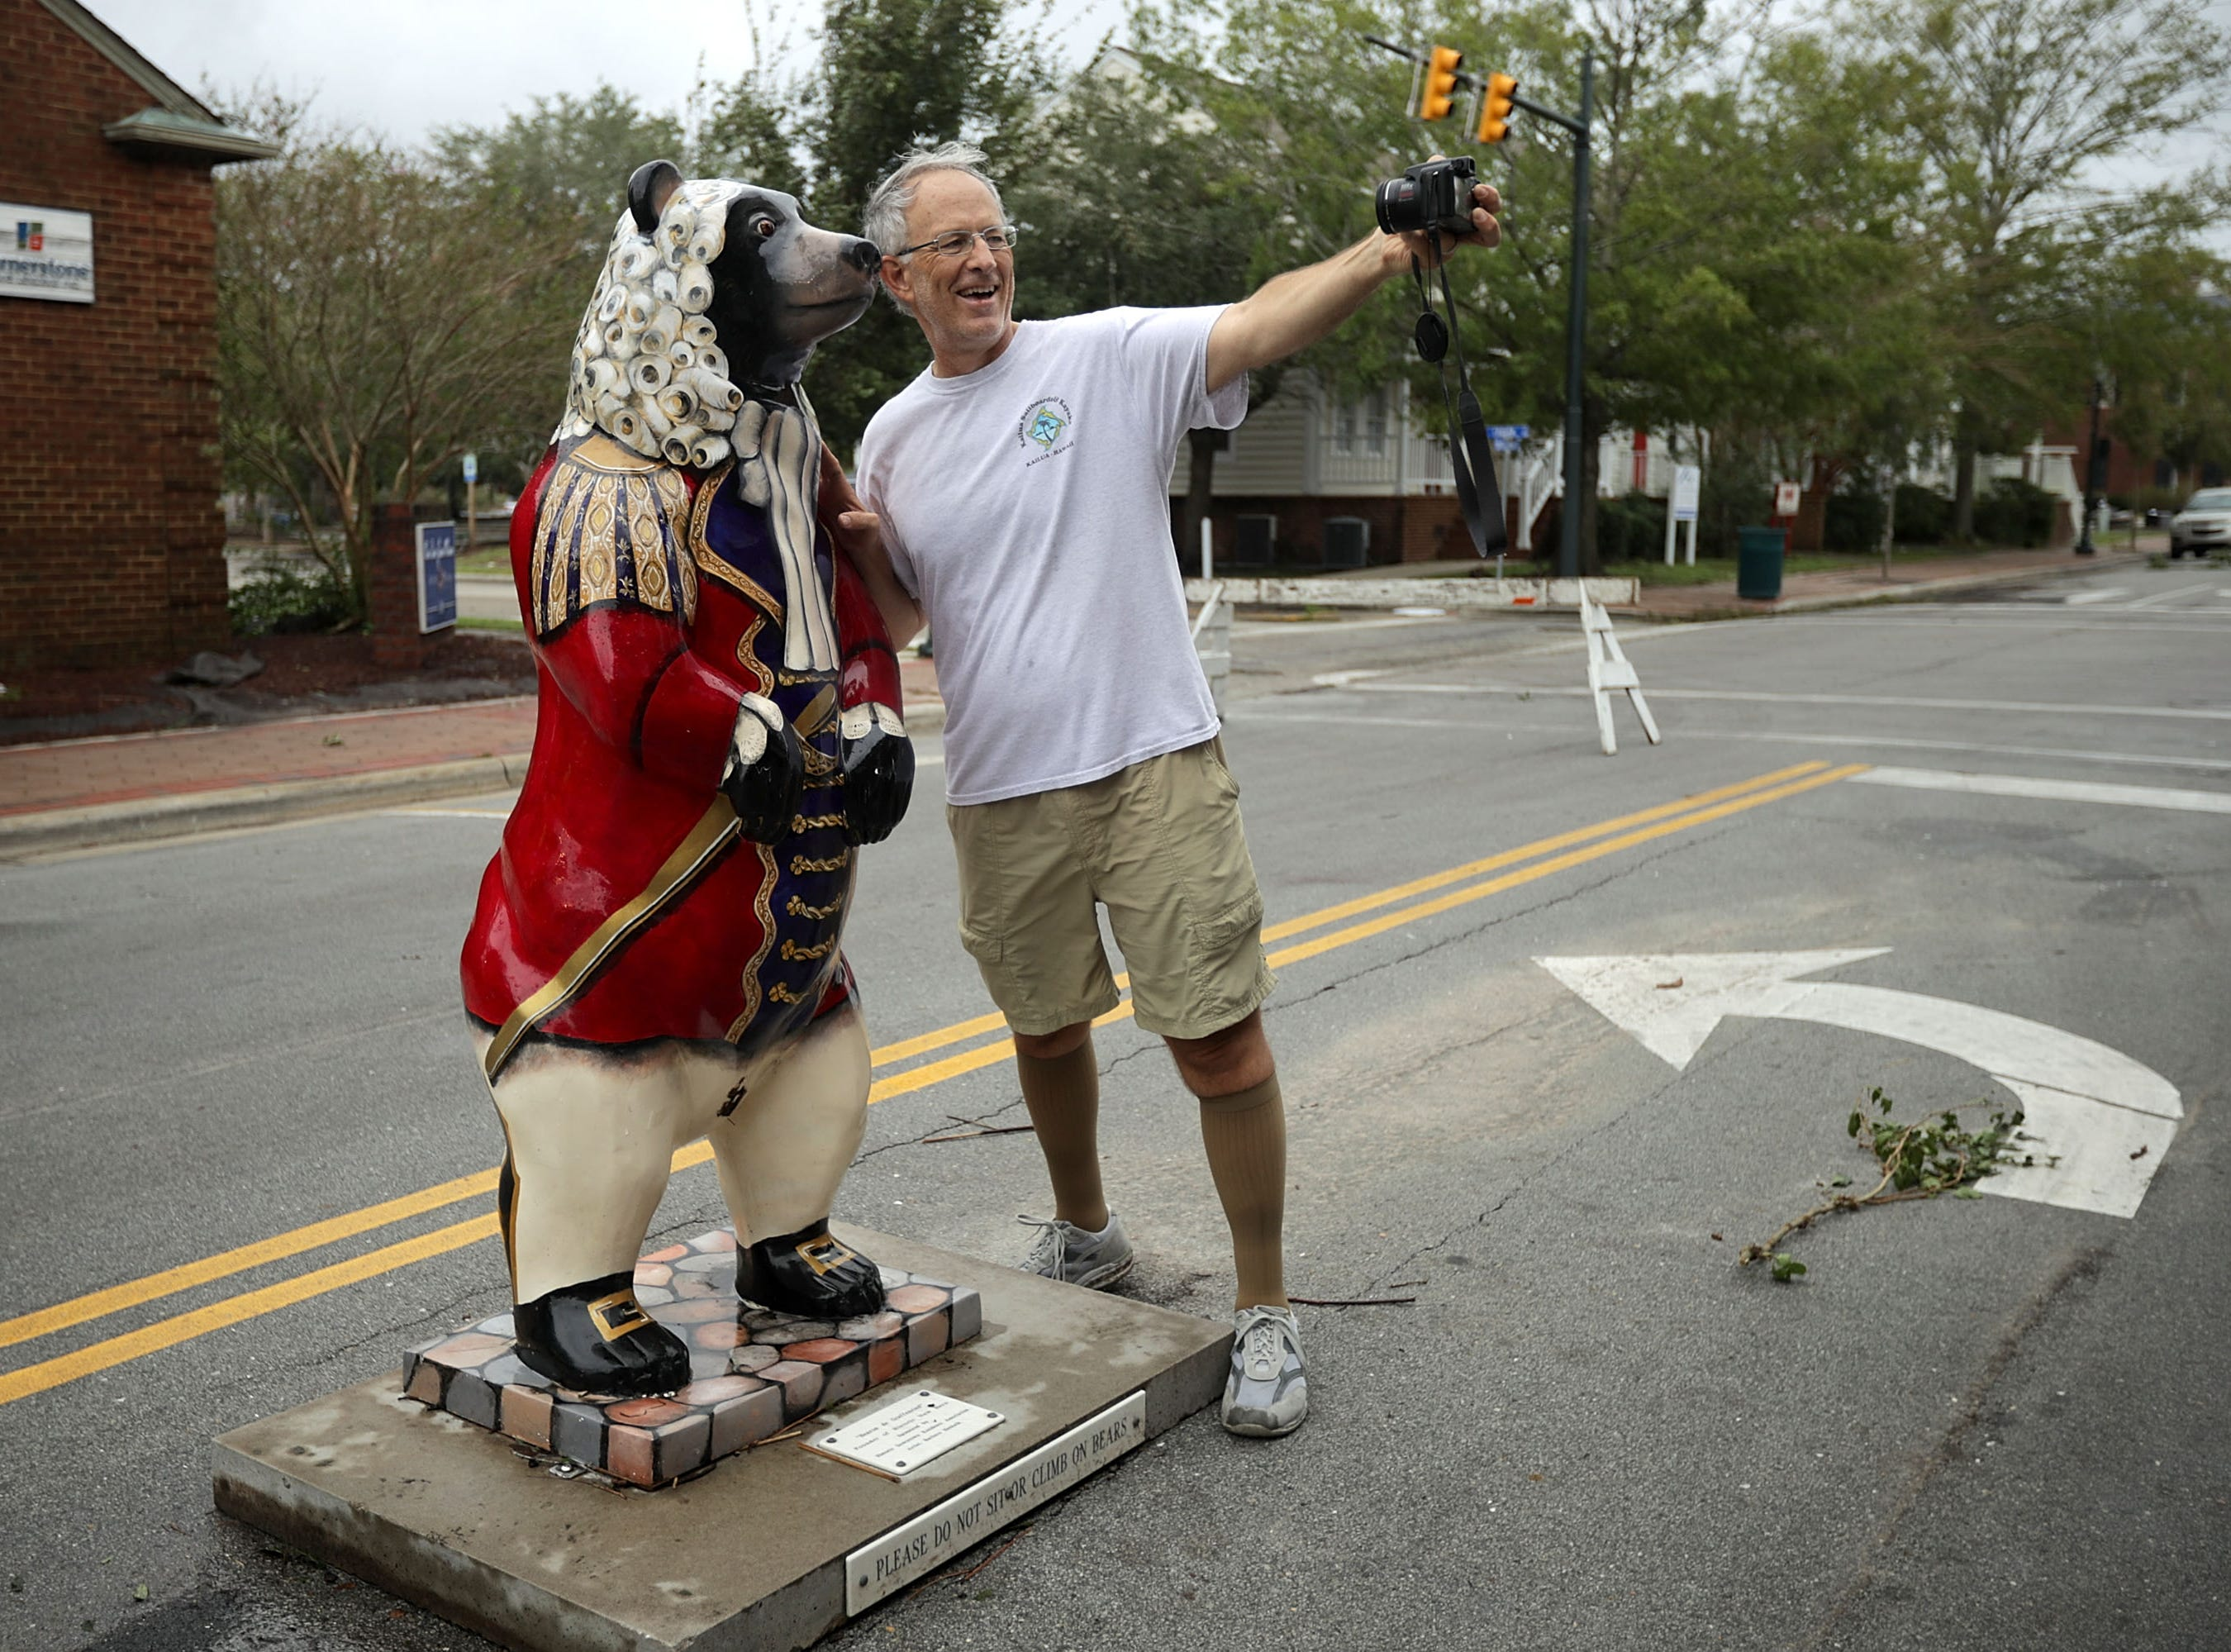 Rick Sitzman takes a selfie with the statue of a bear, the city's symbol, that was dropped in the middle of the street by storm surge produced by Hurricane Florence Sept. 15, 2018 in New Bern, N.C.